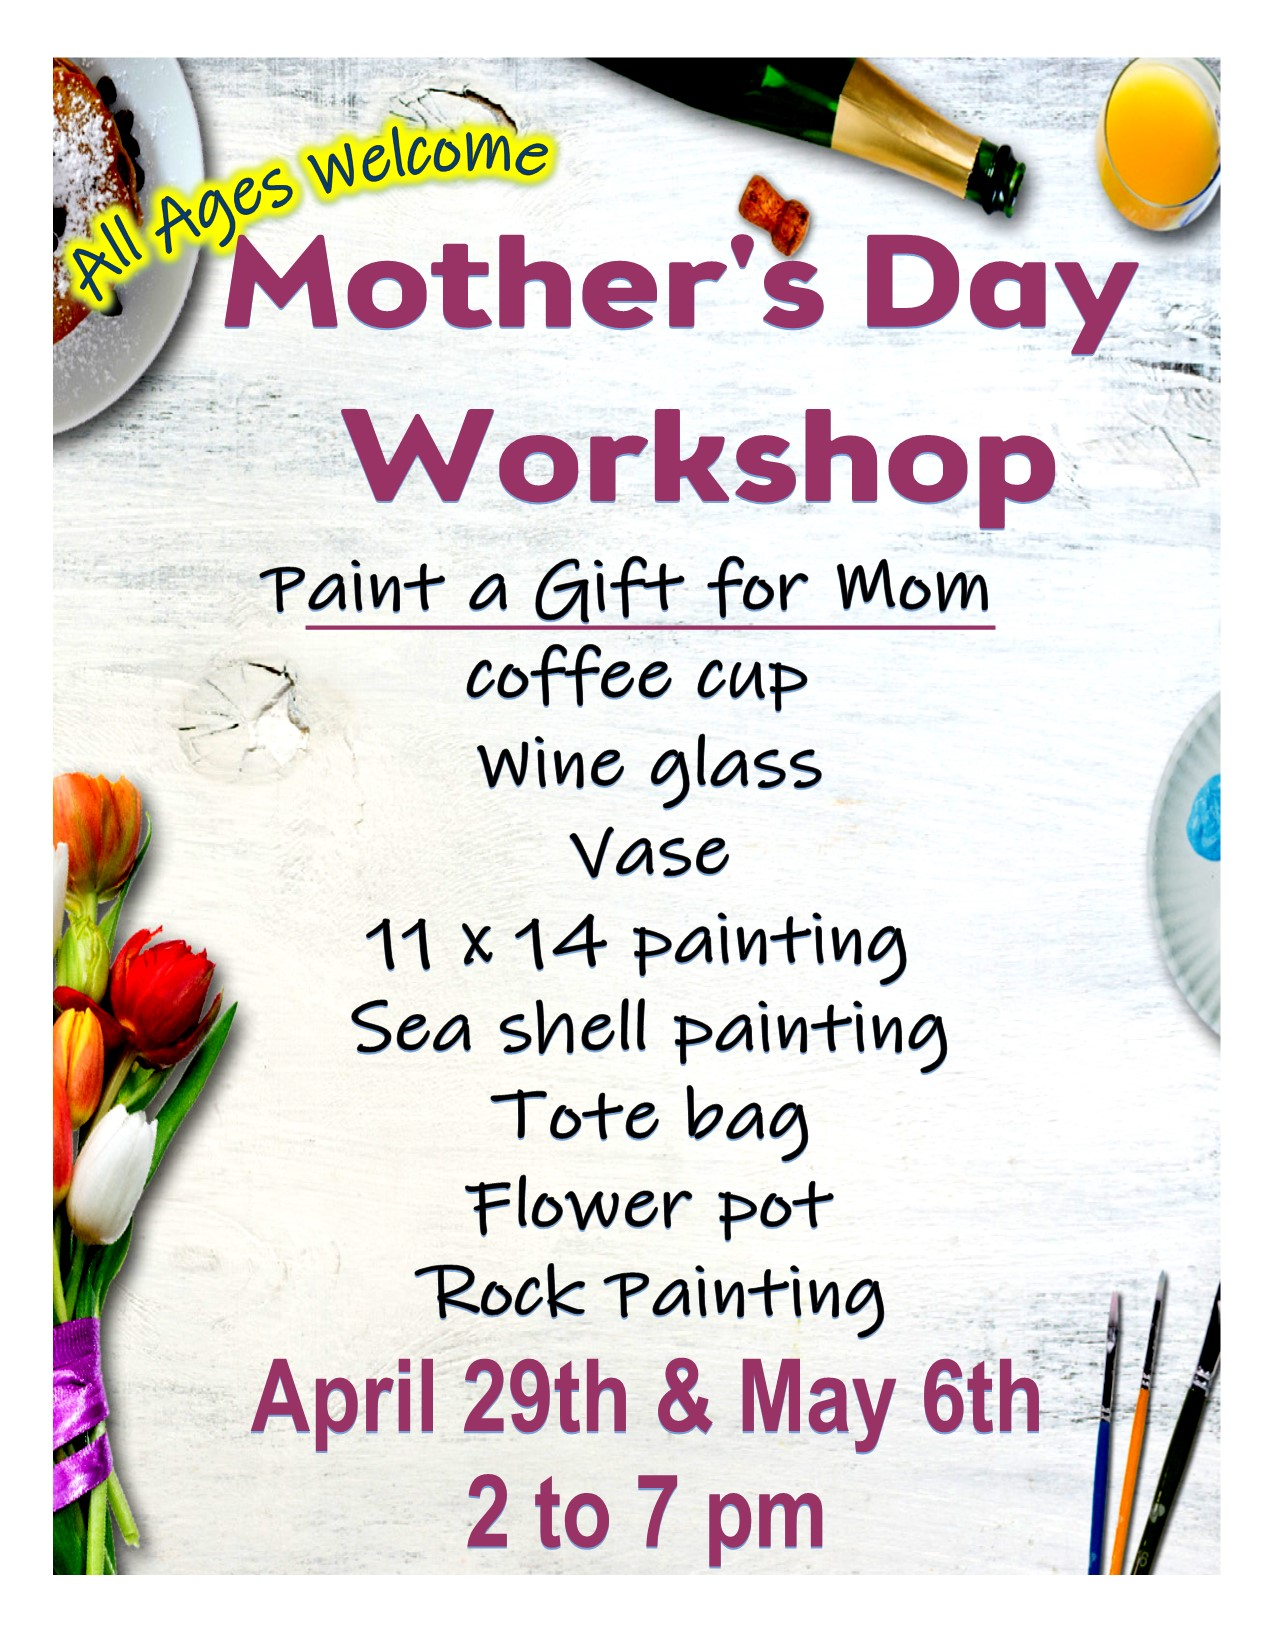 Mother's Day Work Shop ~ All Ages Welcome!